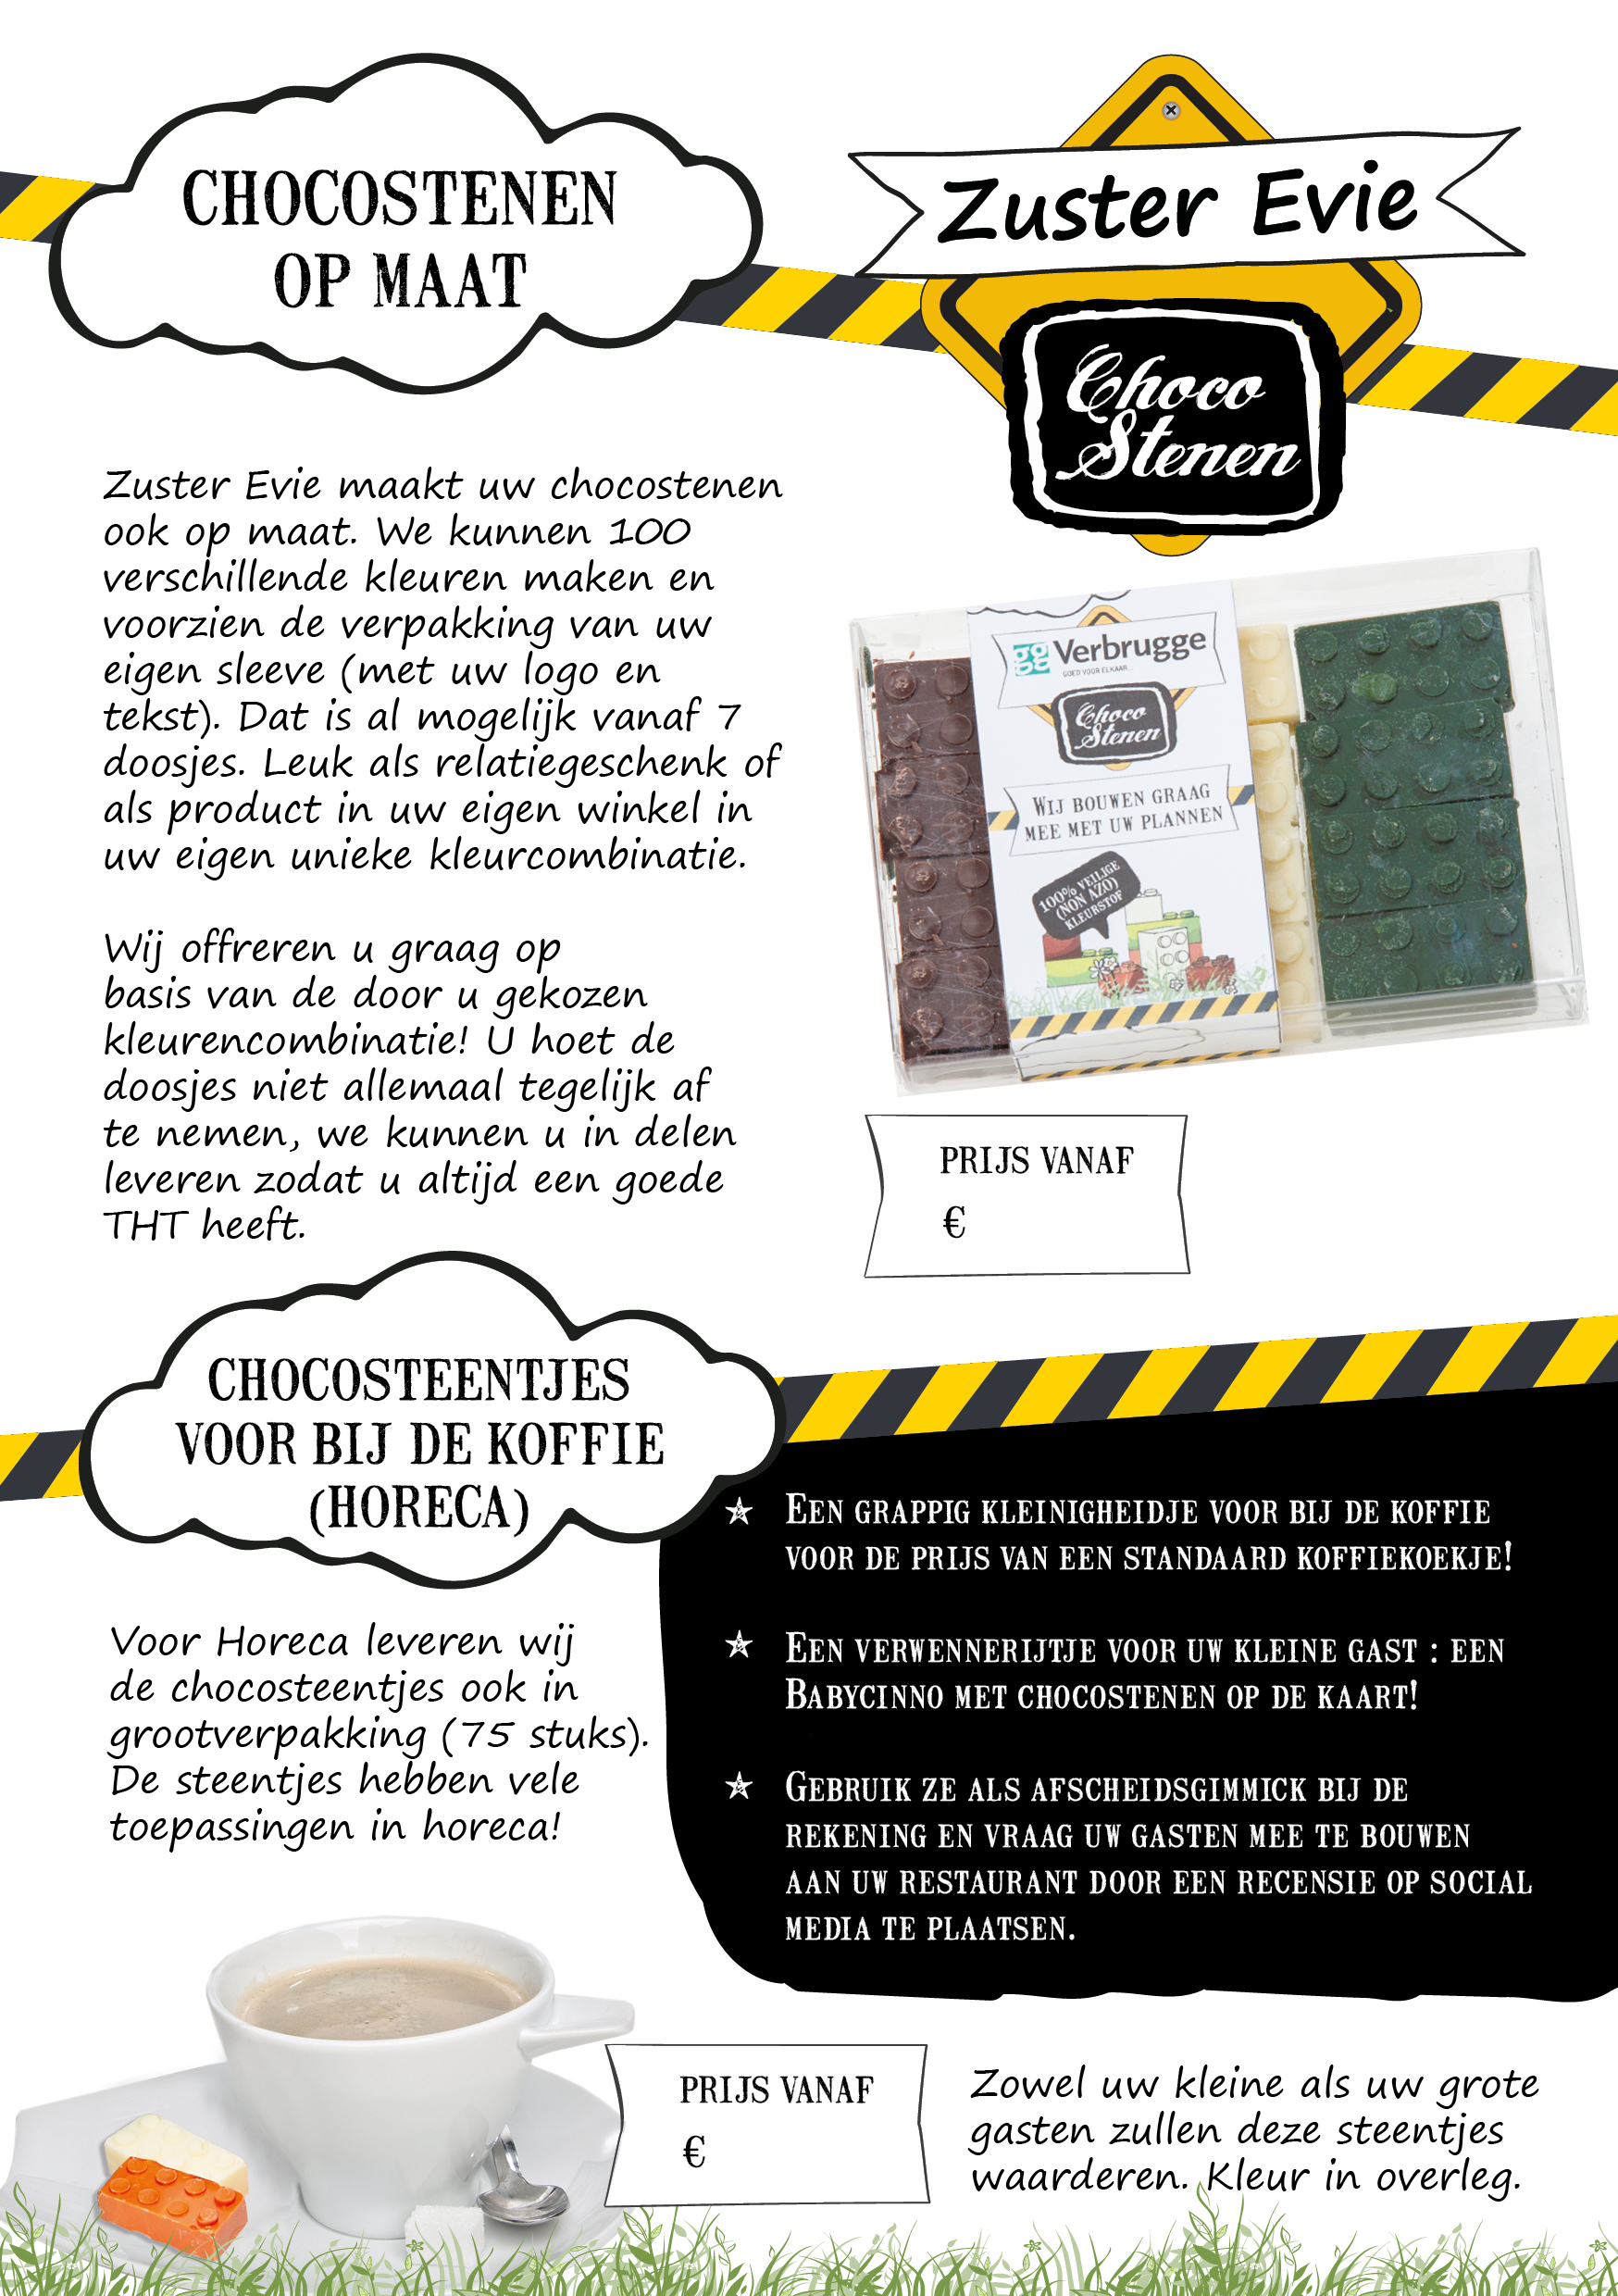 ZandBij_ZusterEvie_ChocoStenen_flyer2.jpg